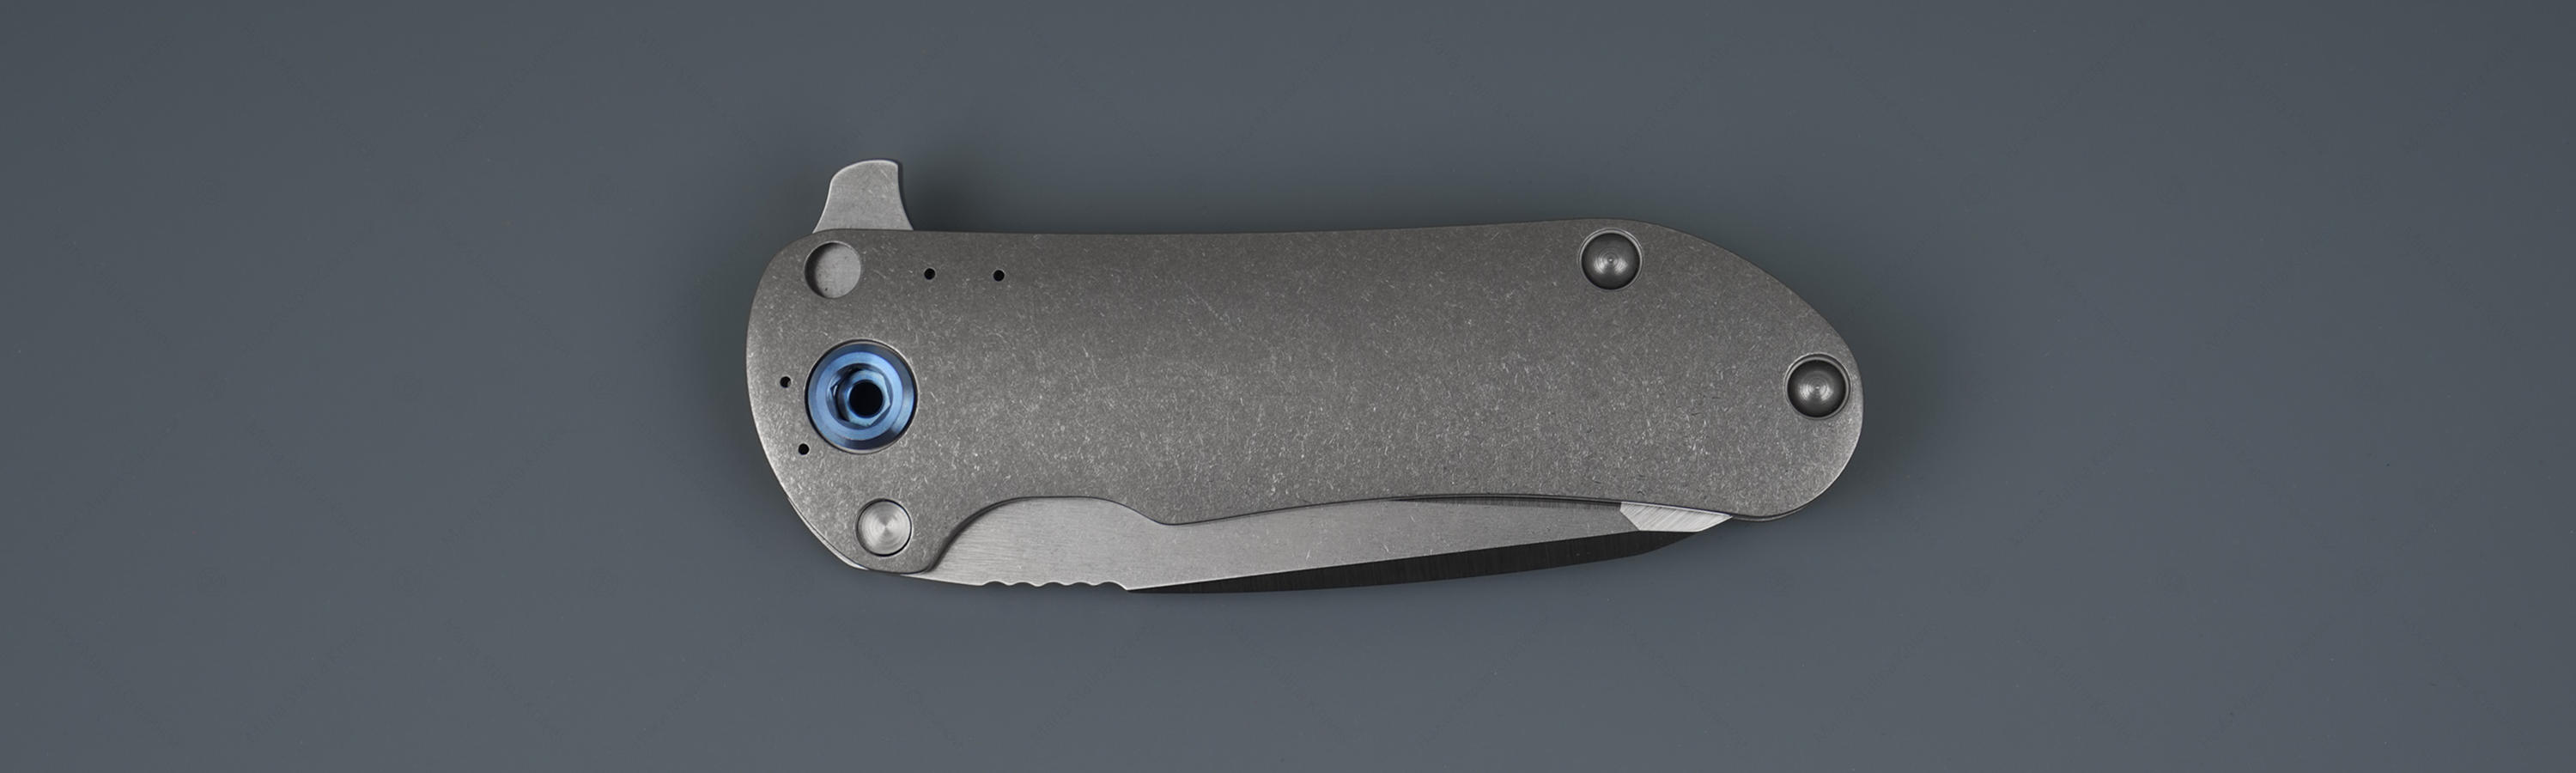 Titanium handle